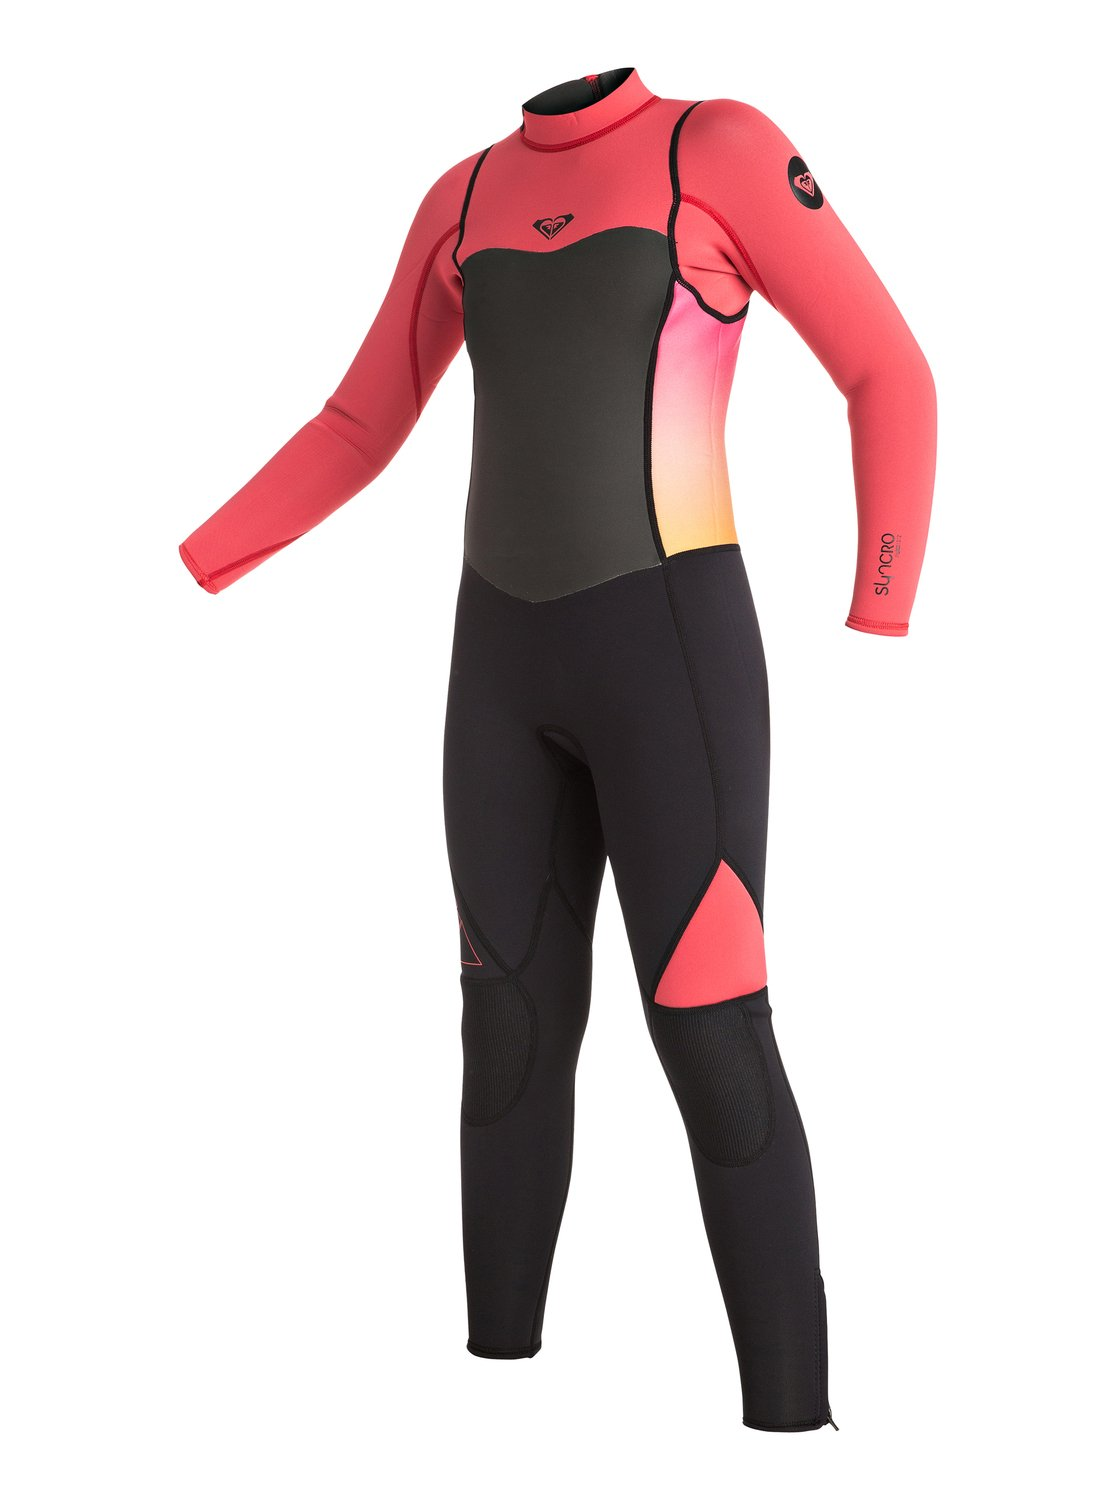 Длинный гидрокостюм (фулсьют) Syncro 3/2mm на спинной молнии для девочекCreating a wetsuit that works like a suit of armour, ROXY's Syncro 3/2mm steamer is a lightweight and flexible design that offers instant water repellence and endless wearability. Cut from our signature F'N Lite insulating neoprene, this performance-driven girls' suit features resistant flatlock seams and a Thermal Smoothie lining to keep you warm and comfortable all session long.<br>